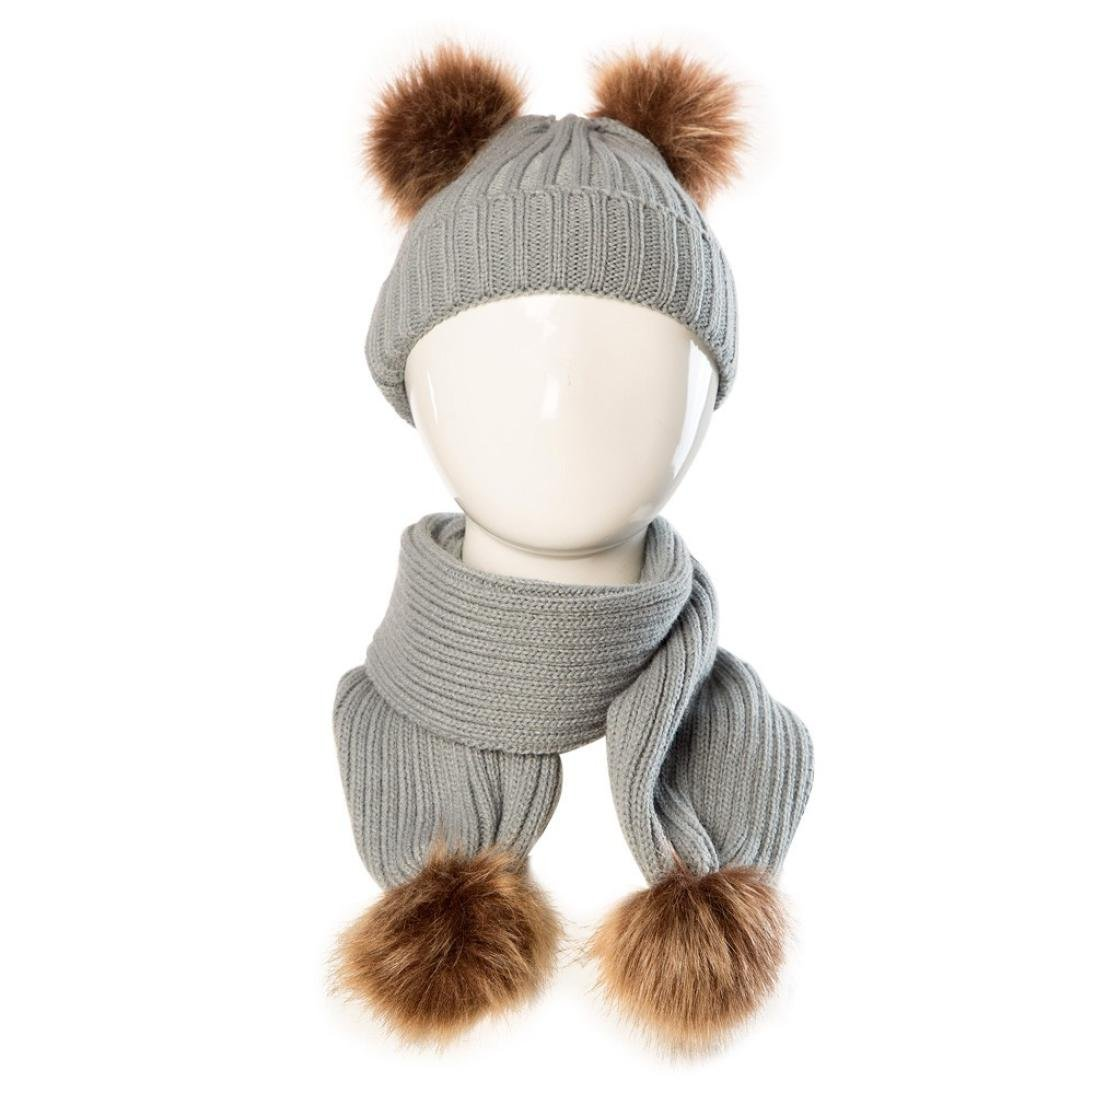 Minshao Baby Cute Winter Kids Baby Hats Keep Warm Set Cute Hat Scarf For 0-36 Month Old Baby